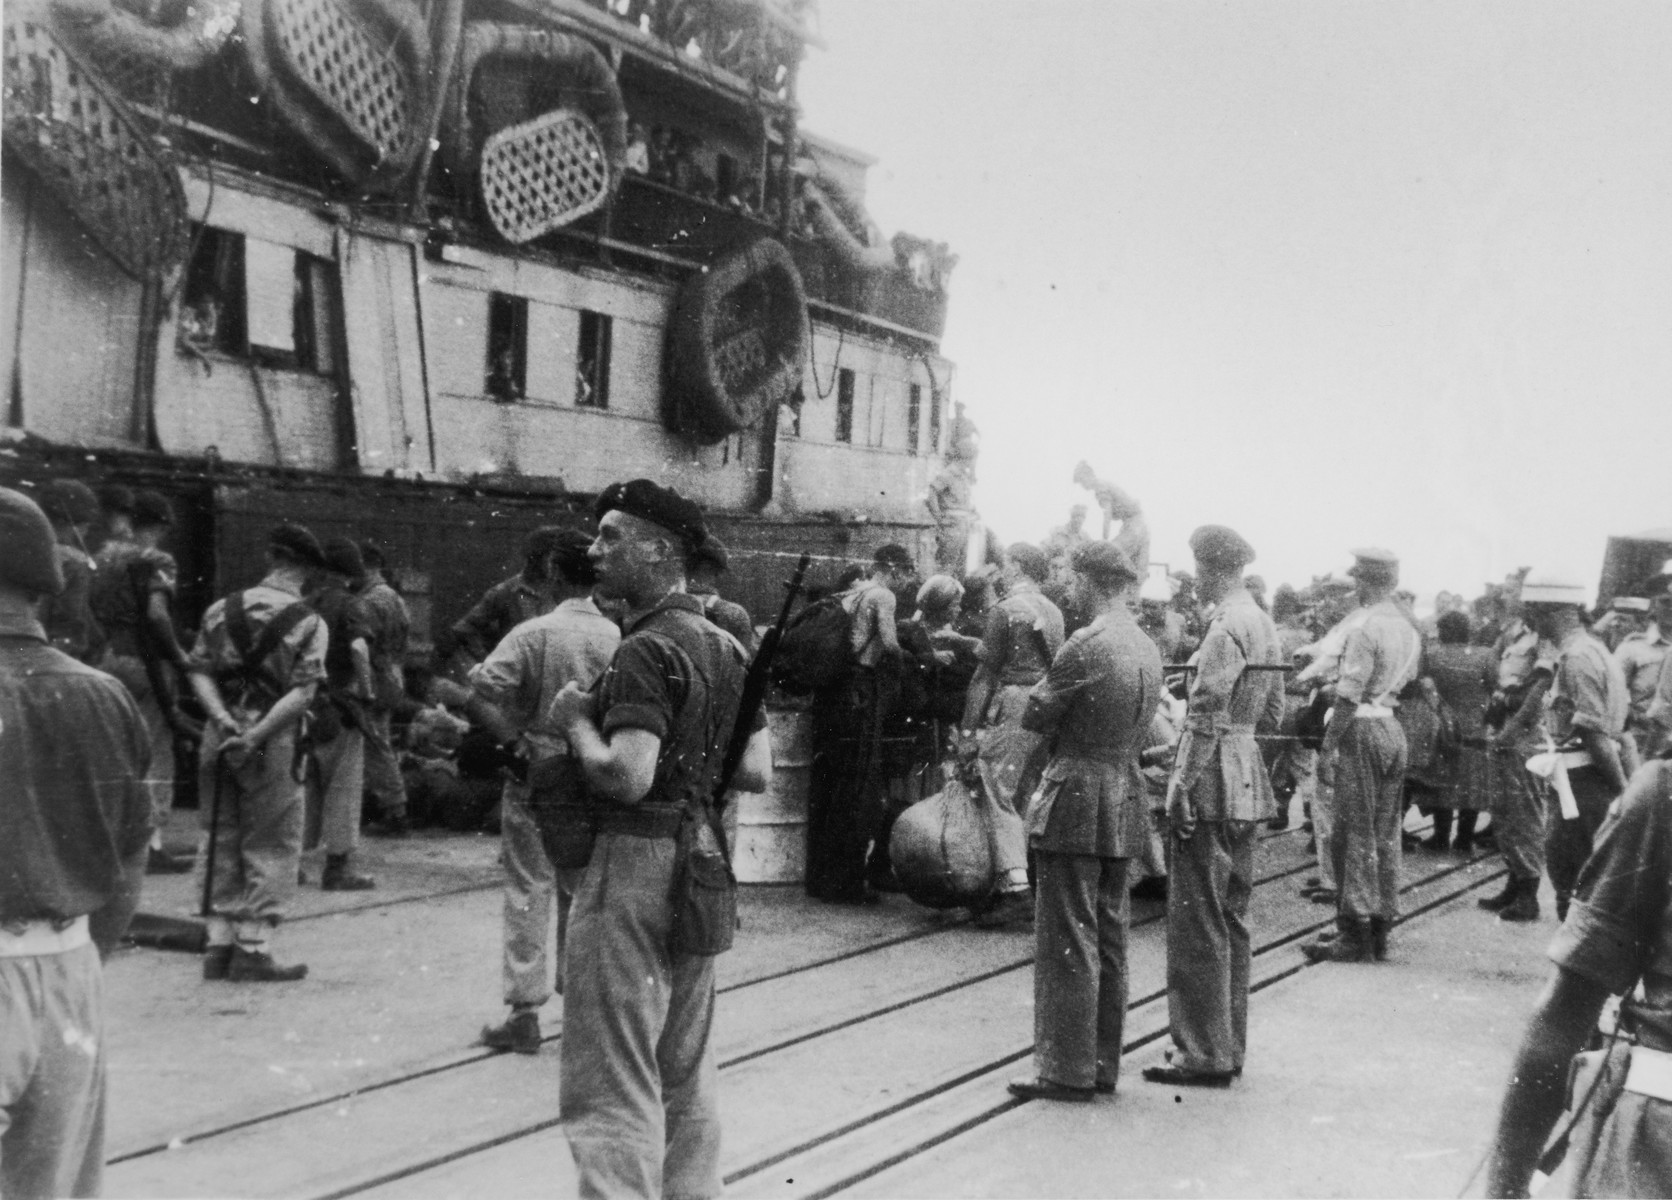 British soldiers on the pier in Haifa harbor oversee the offloading of passengers from the illegal immigrant ship, Exodus 1947.